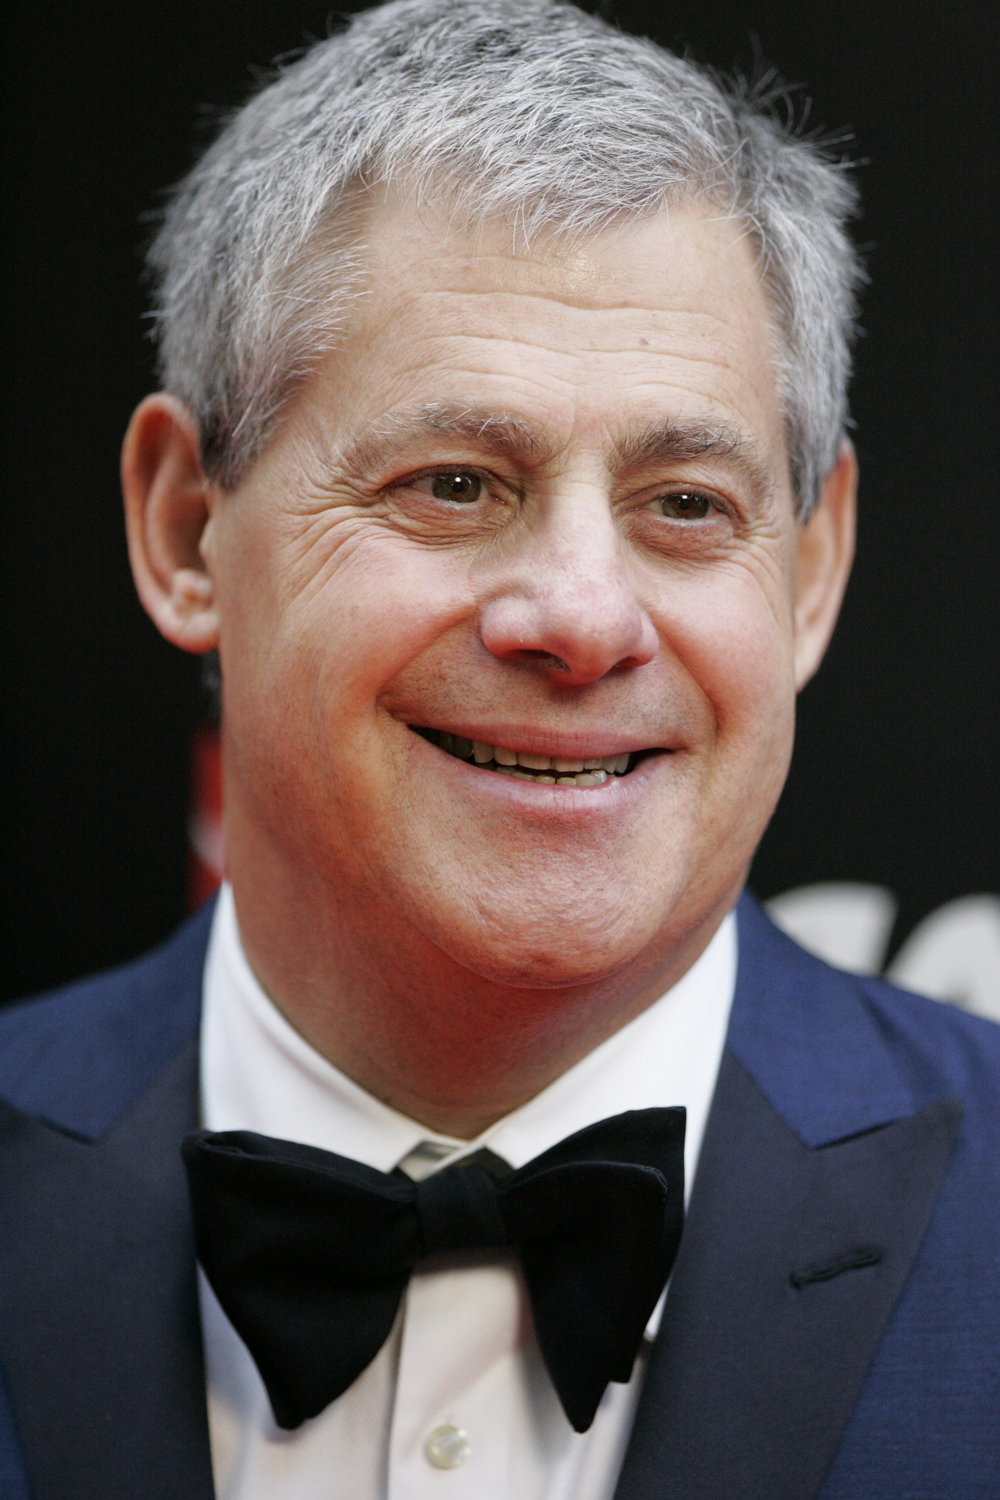 File:Sir Cameron Mackintosh - Flickr - Eva Rinaldi Celebrity and Live Music  Photographer.jpg - Wikimedia Commons